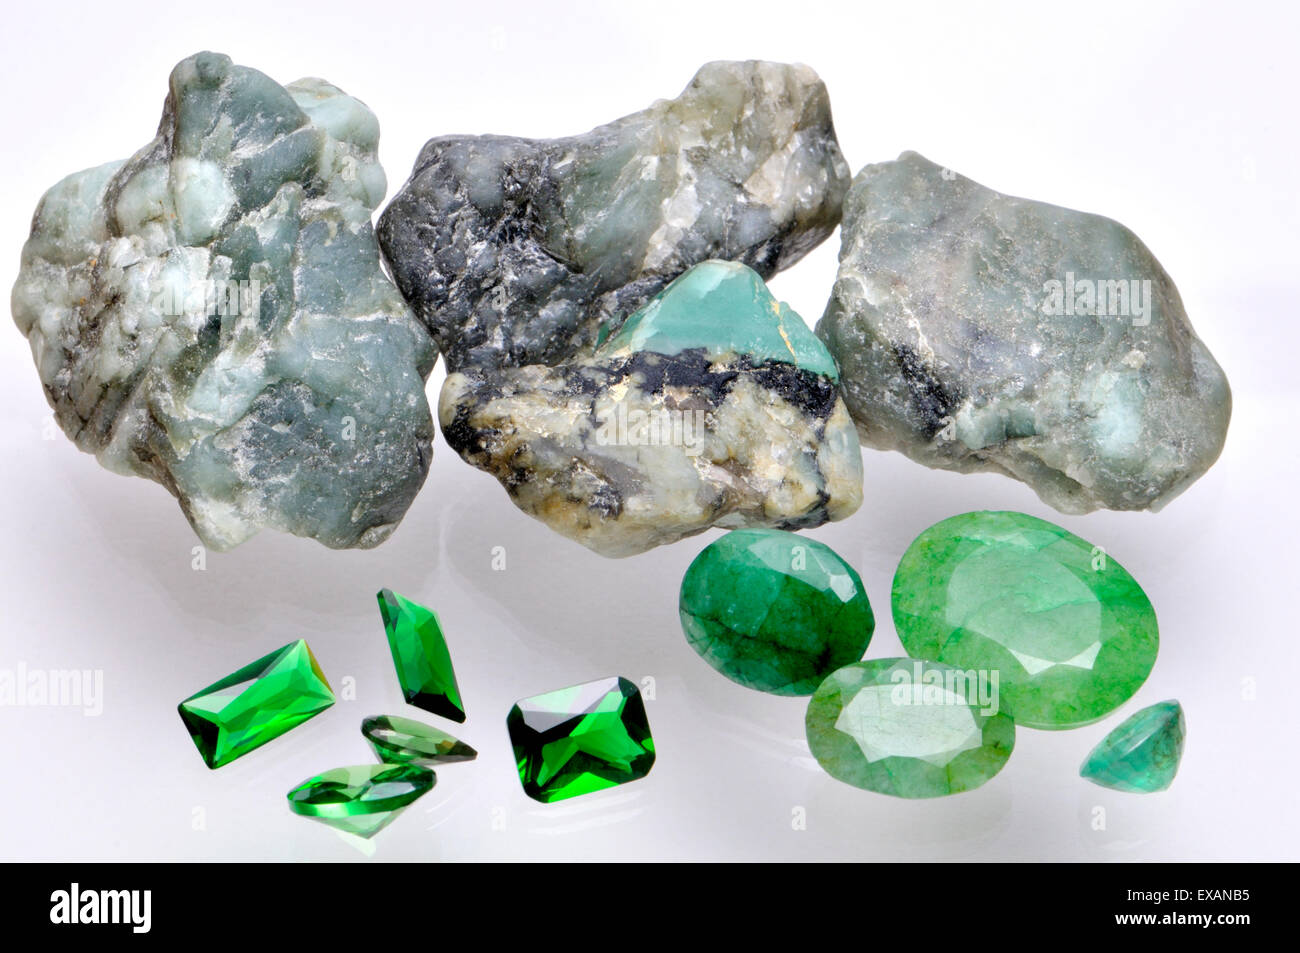 Emerald - rough mineral and cut gemstones - Stock Image